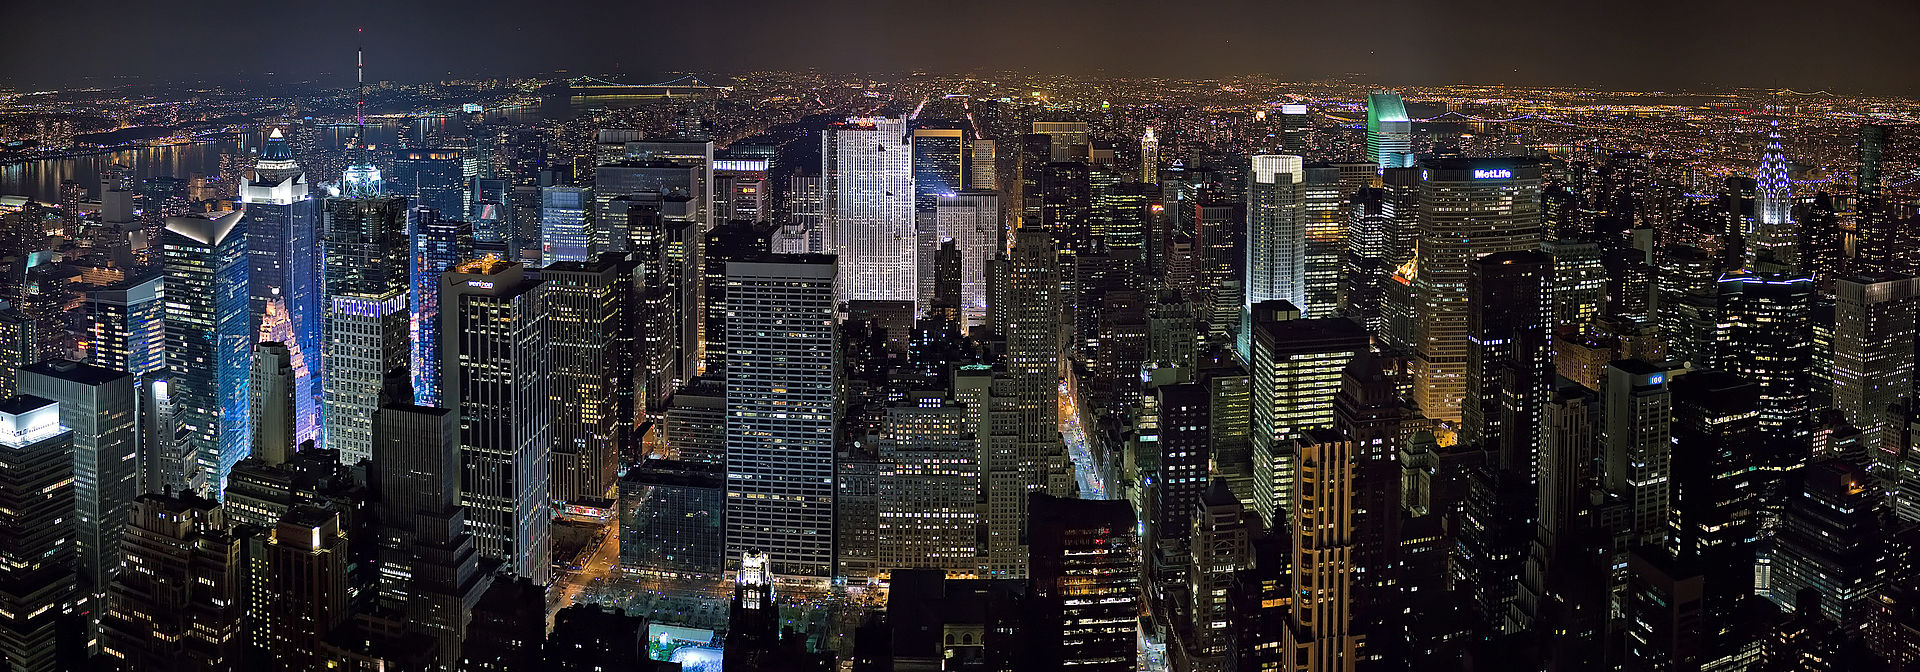 1920px-New_York_Midtown_Skyline_at_night_-_Jan_2006_edit1